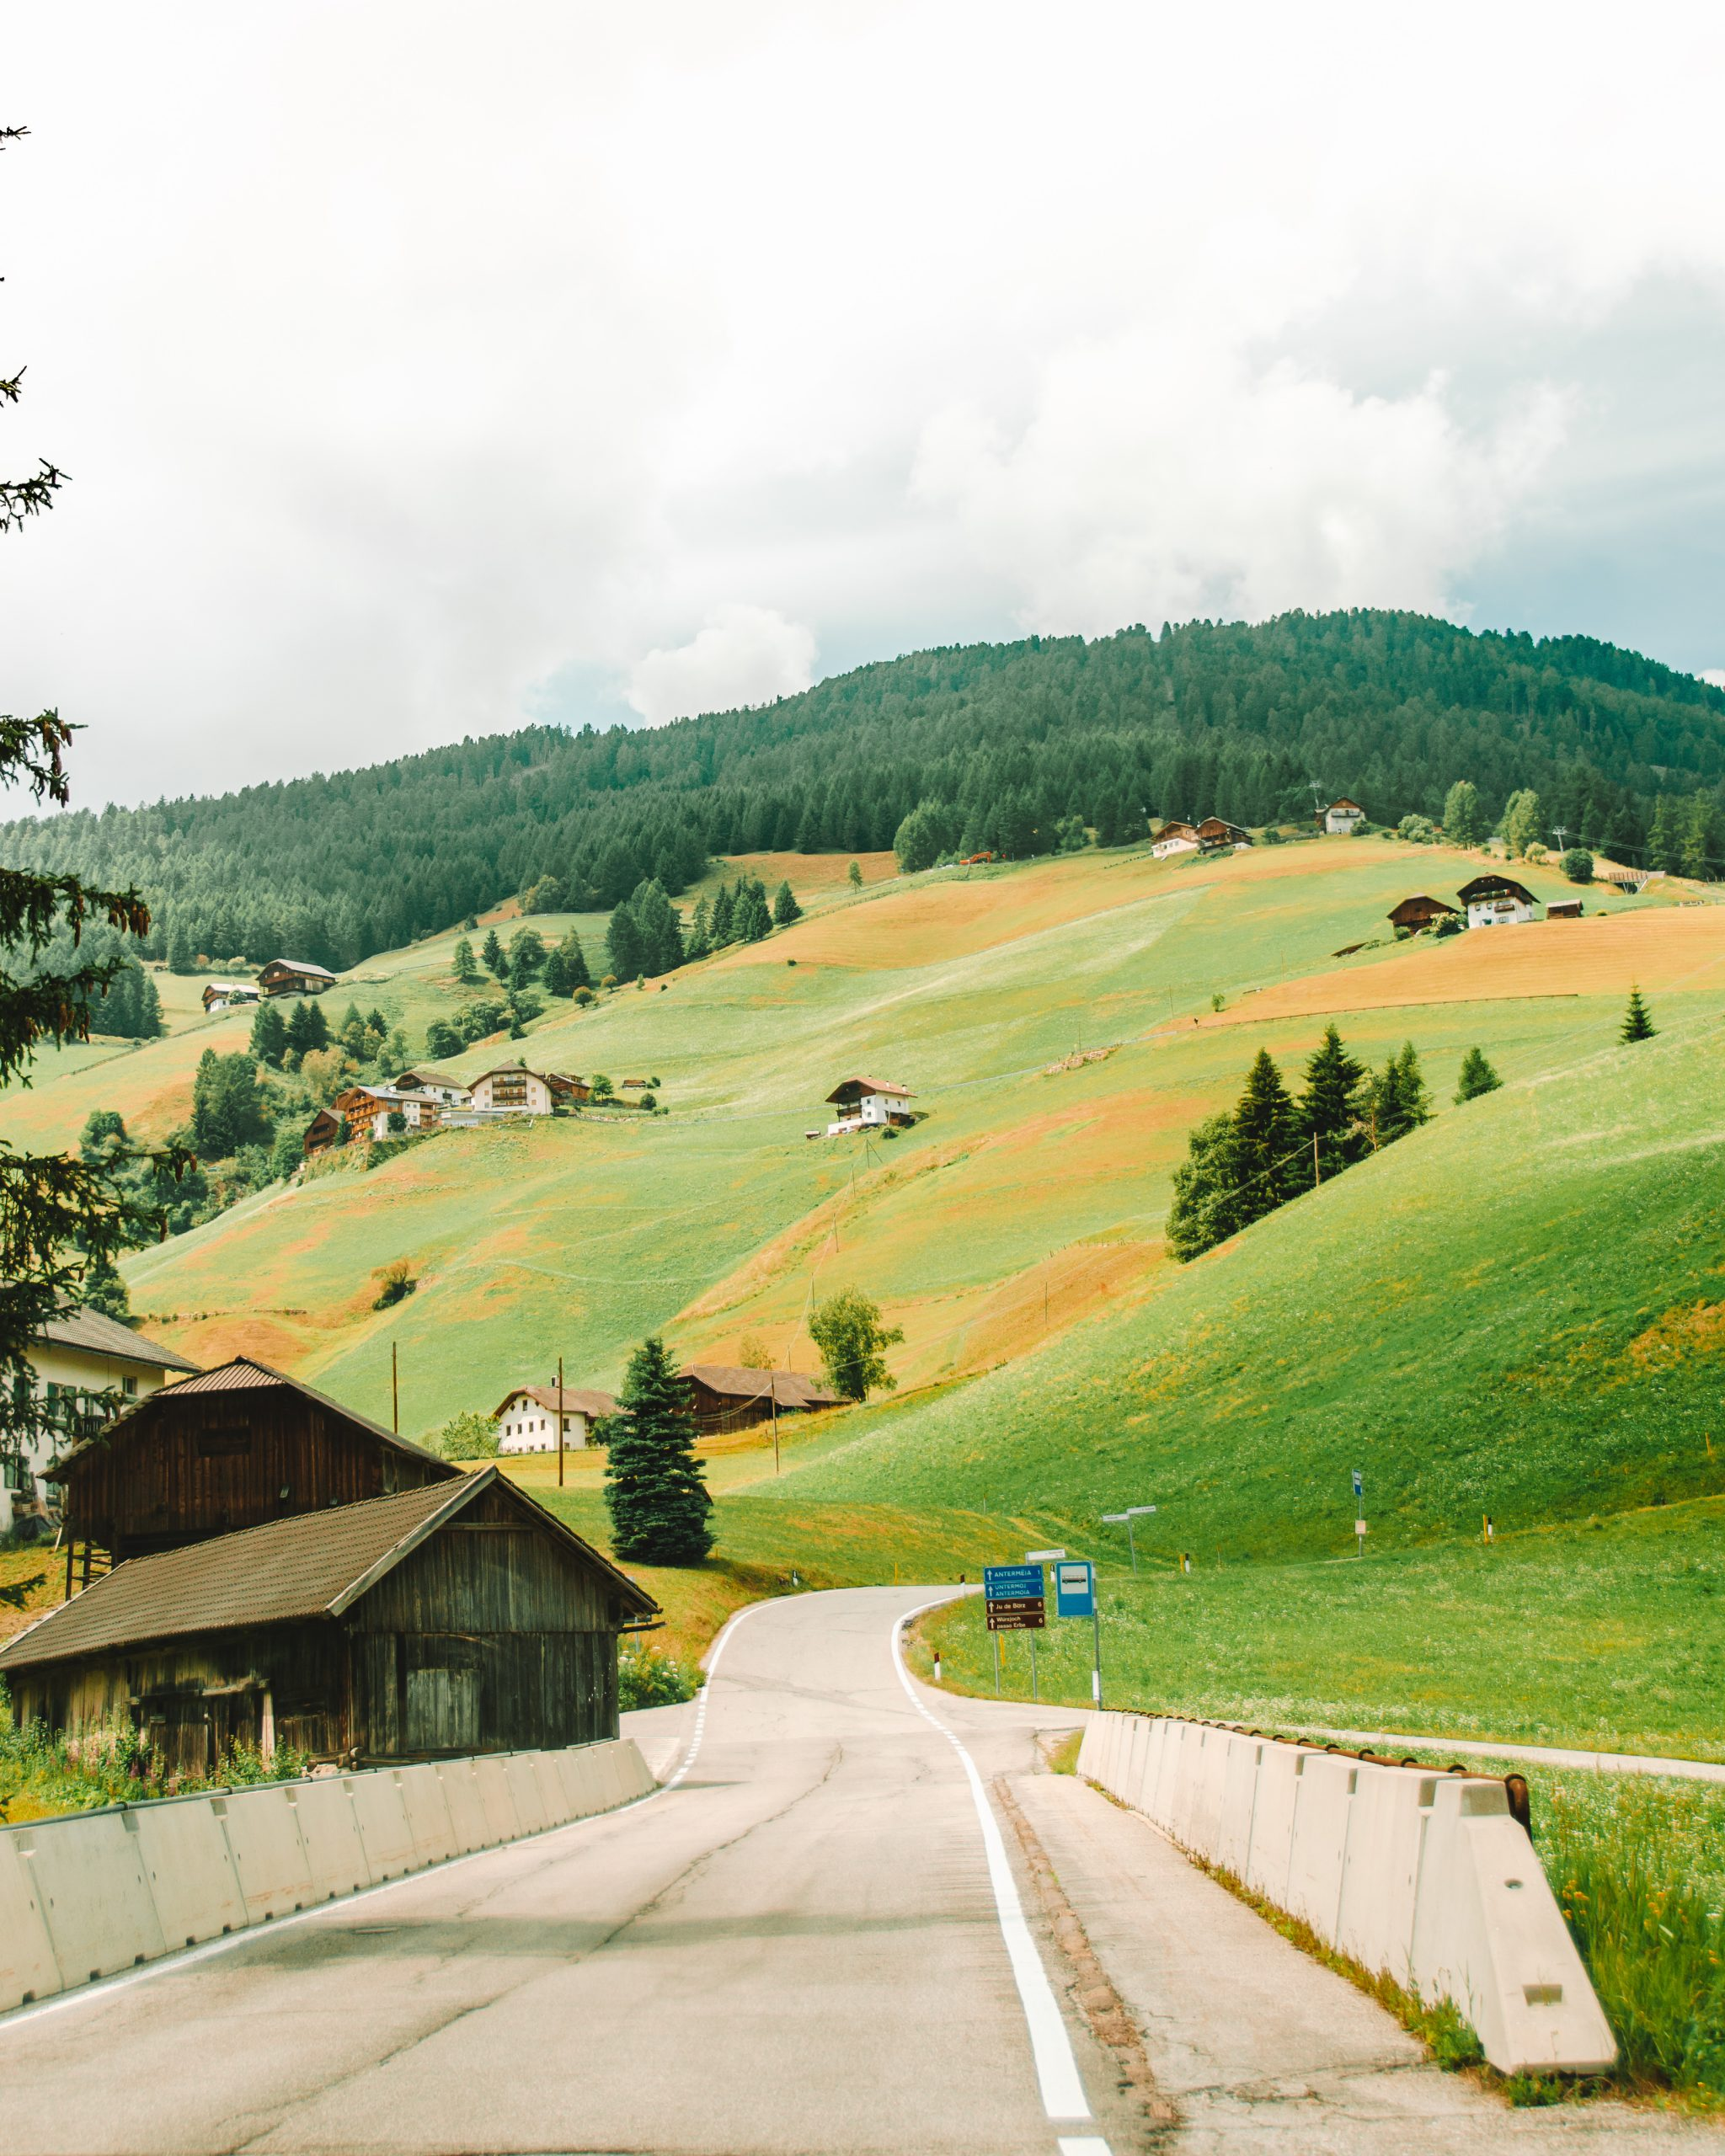 Rolling green hills on a road trip in the Dolomites, Italy